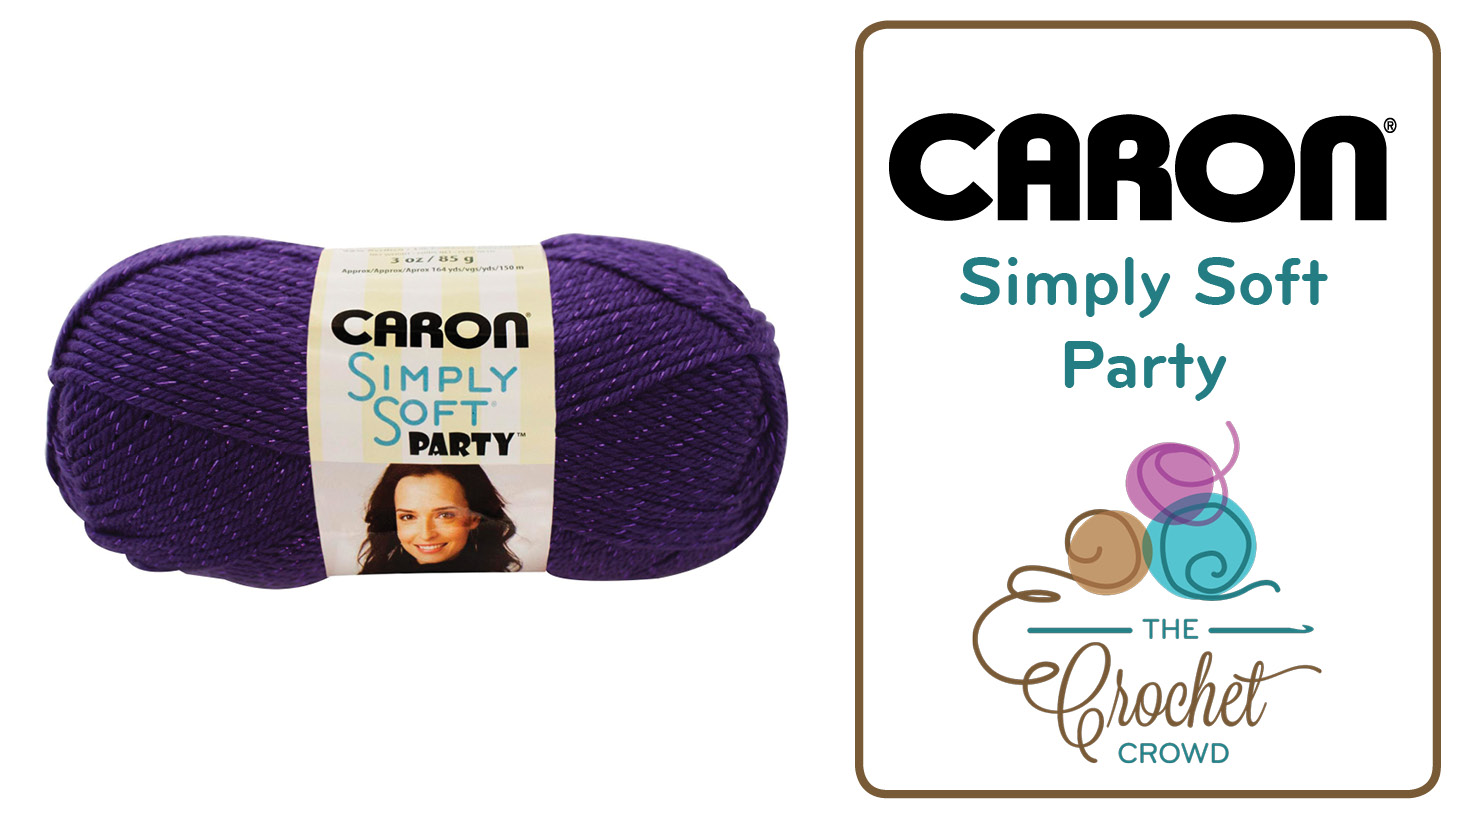 What To Do With Caron Simply Soft Party Yarn The Crochet Crowd